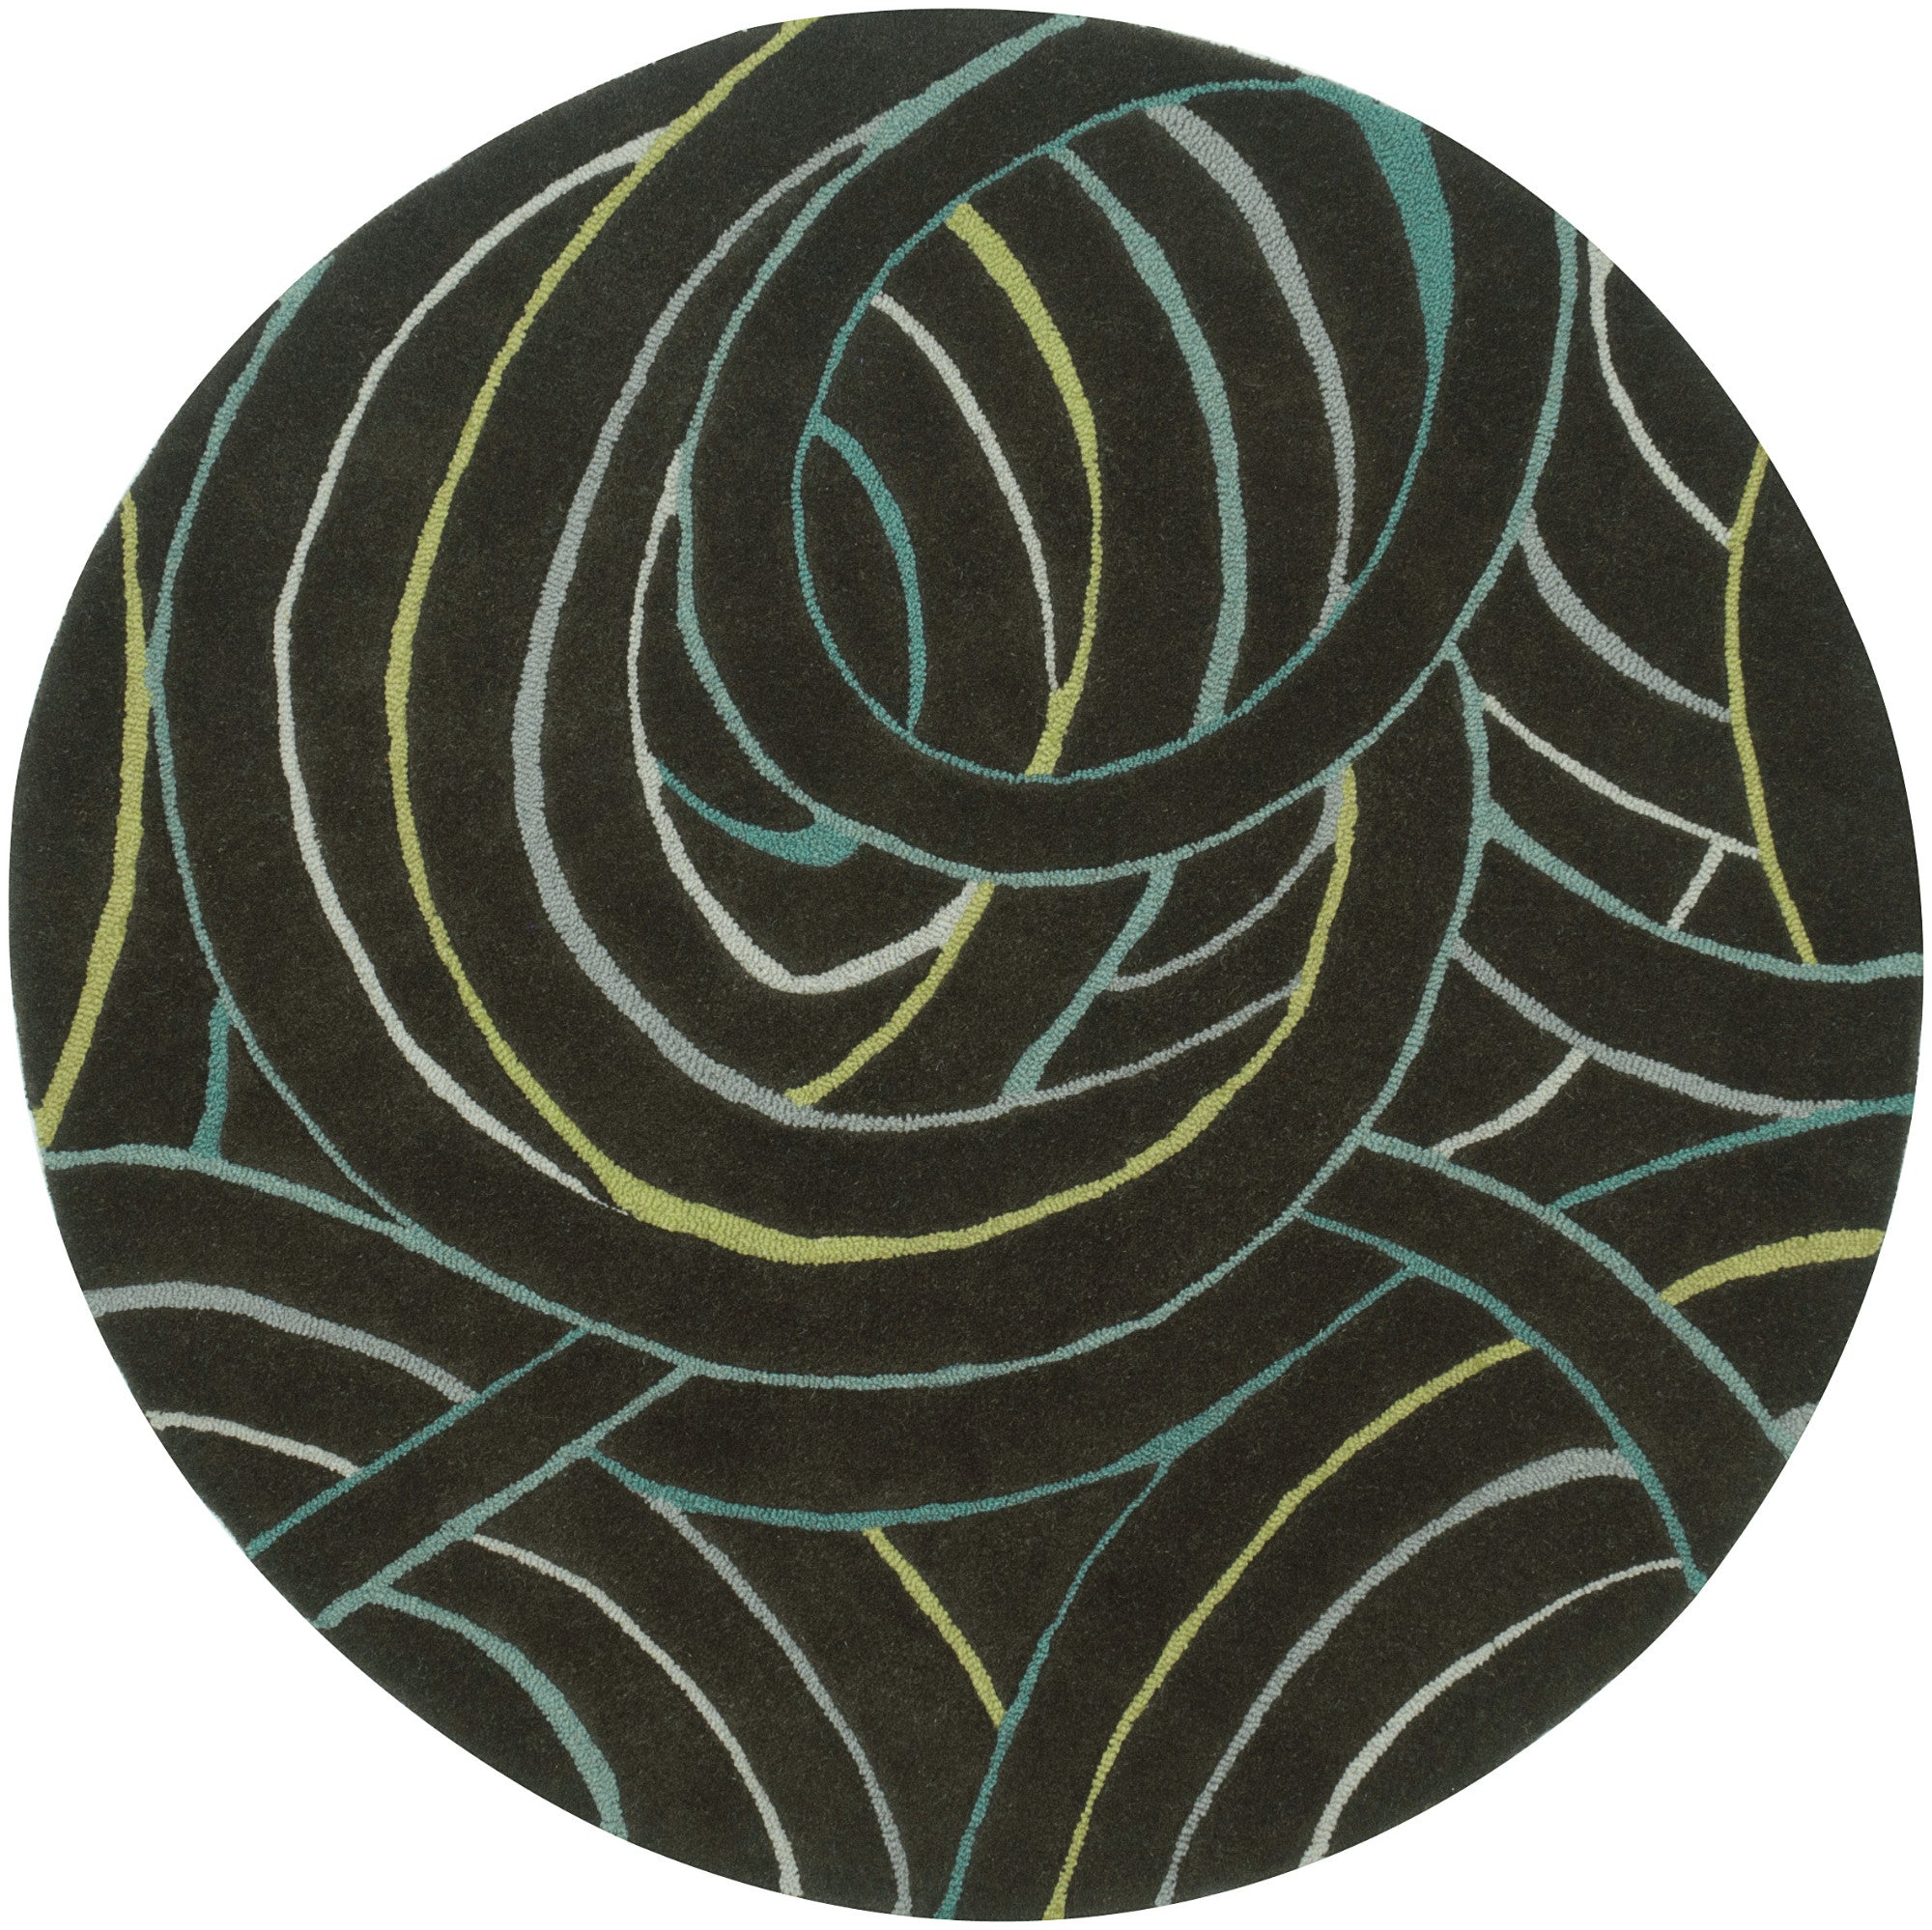 LR Resources Vibrance 03545 Miami Area Rug